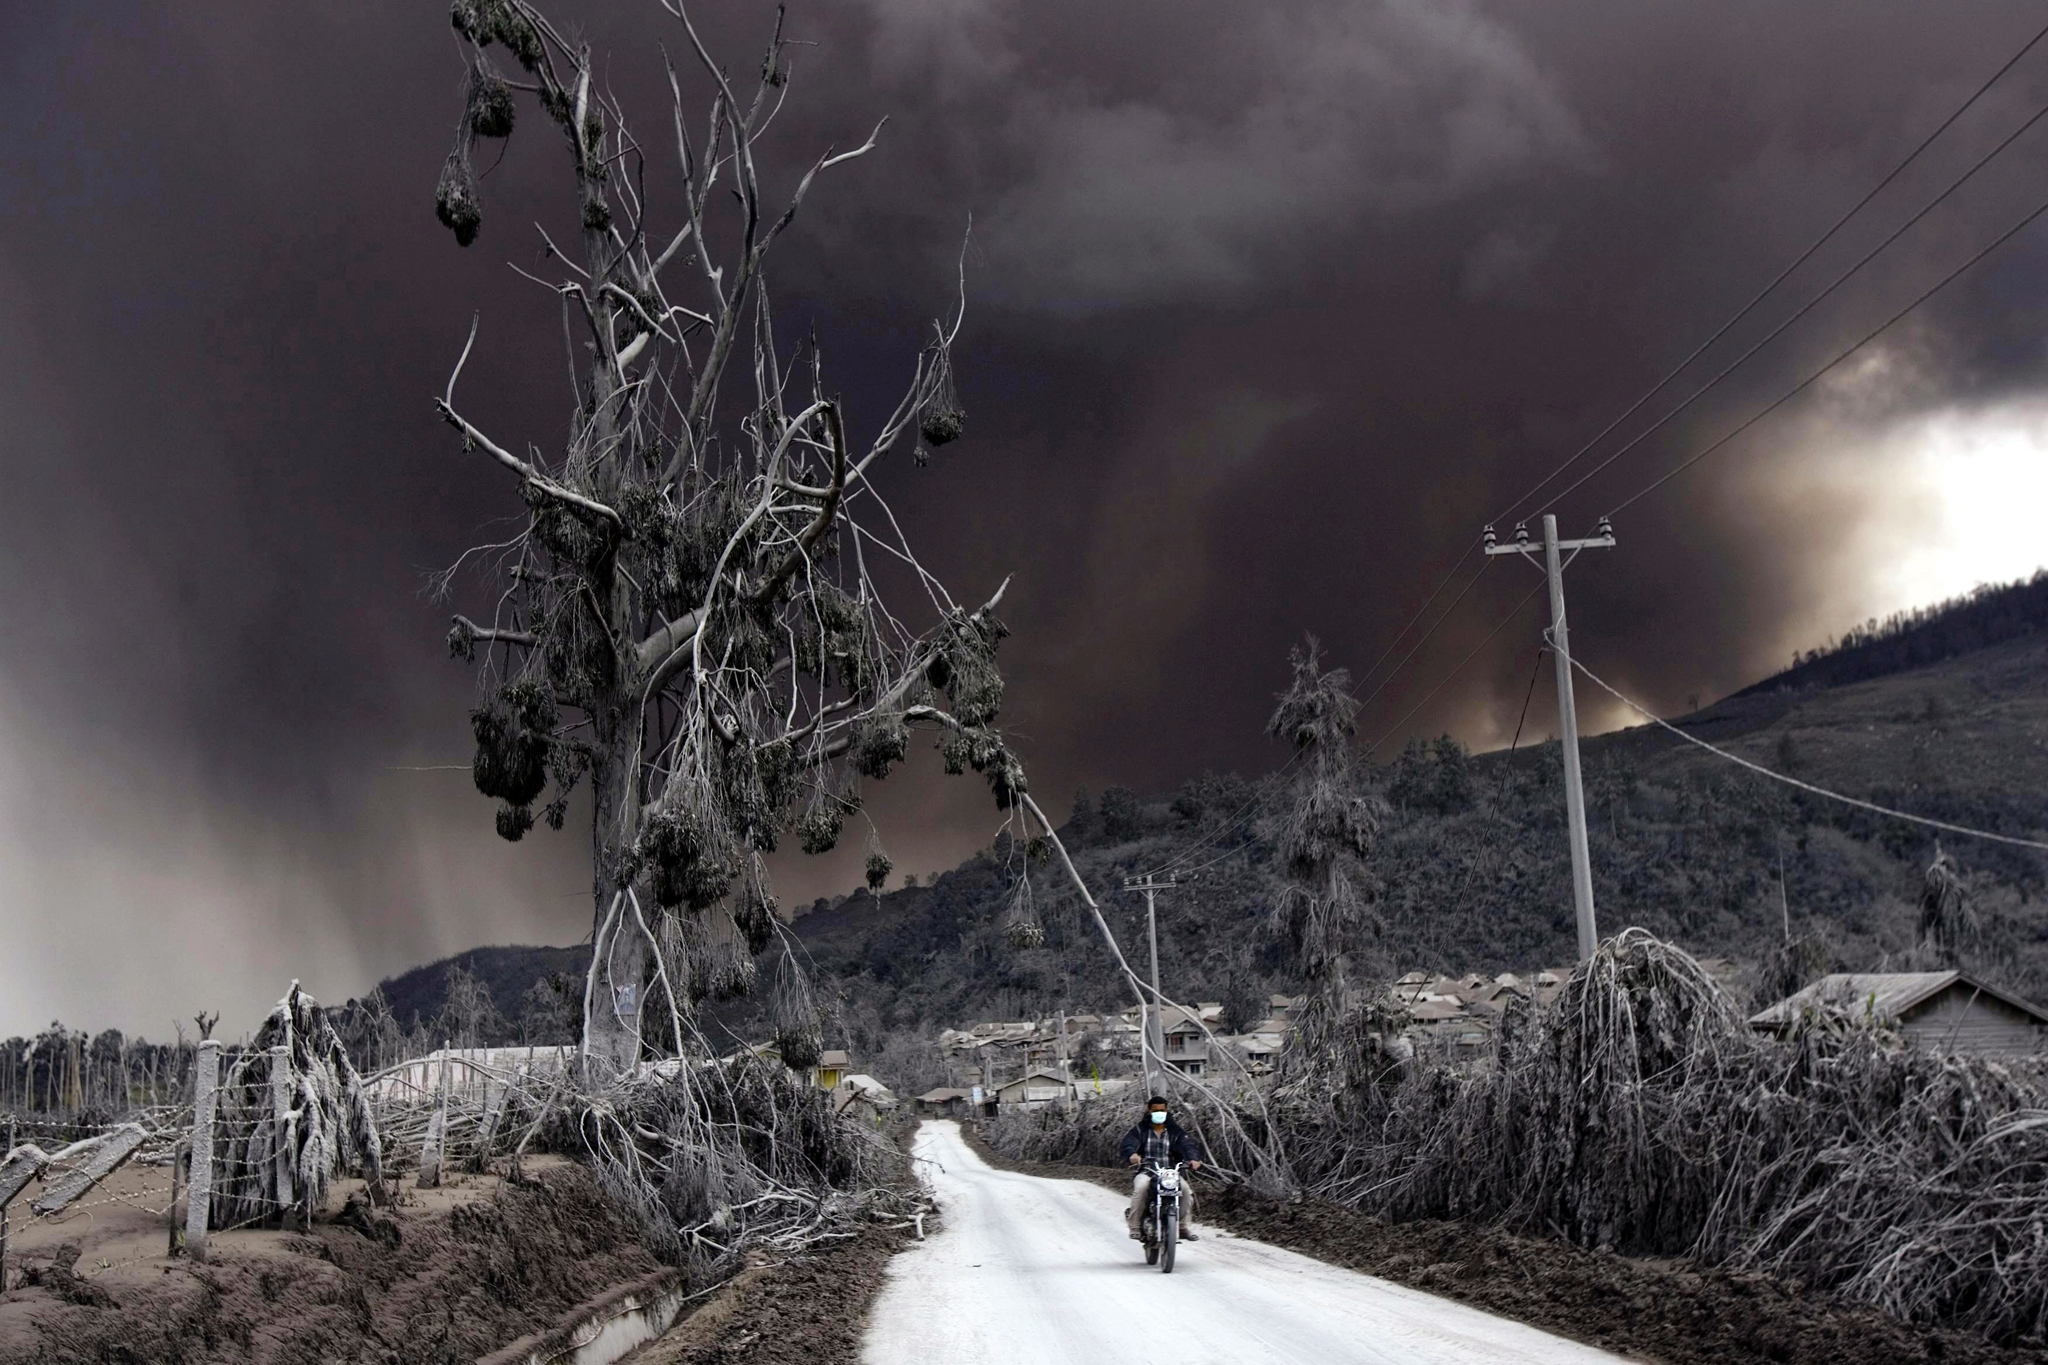 Mount Sinabung spews hot lava and ashes...epa04024301 An Indonesian villager rides his motorcycle past a damaged tree as Mount Sinabung spews volcanic smoke, at Sigarang Garang village in Karo, North Sumatra, Indonesia, 16 January 2014. Thousands of people have been sheltering for months in mosques, churches and government buildings just out of reach of the past months' eruptions of Indonesia's Mount Sinabung. The 2,460-metre volcano had been dormant for 400 years before it erupted in August 2010, forcing more than 30,000 to flee their homes.  EPA/DEDI SAHPUTRA